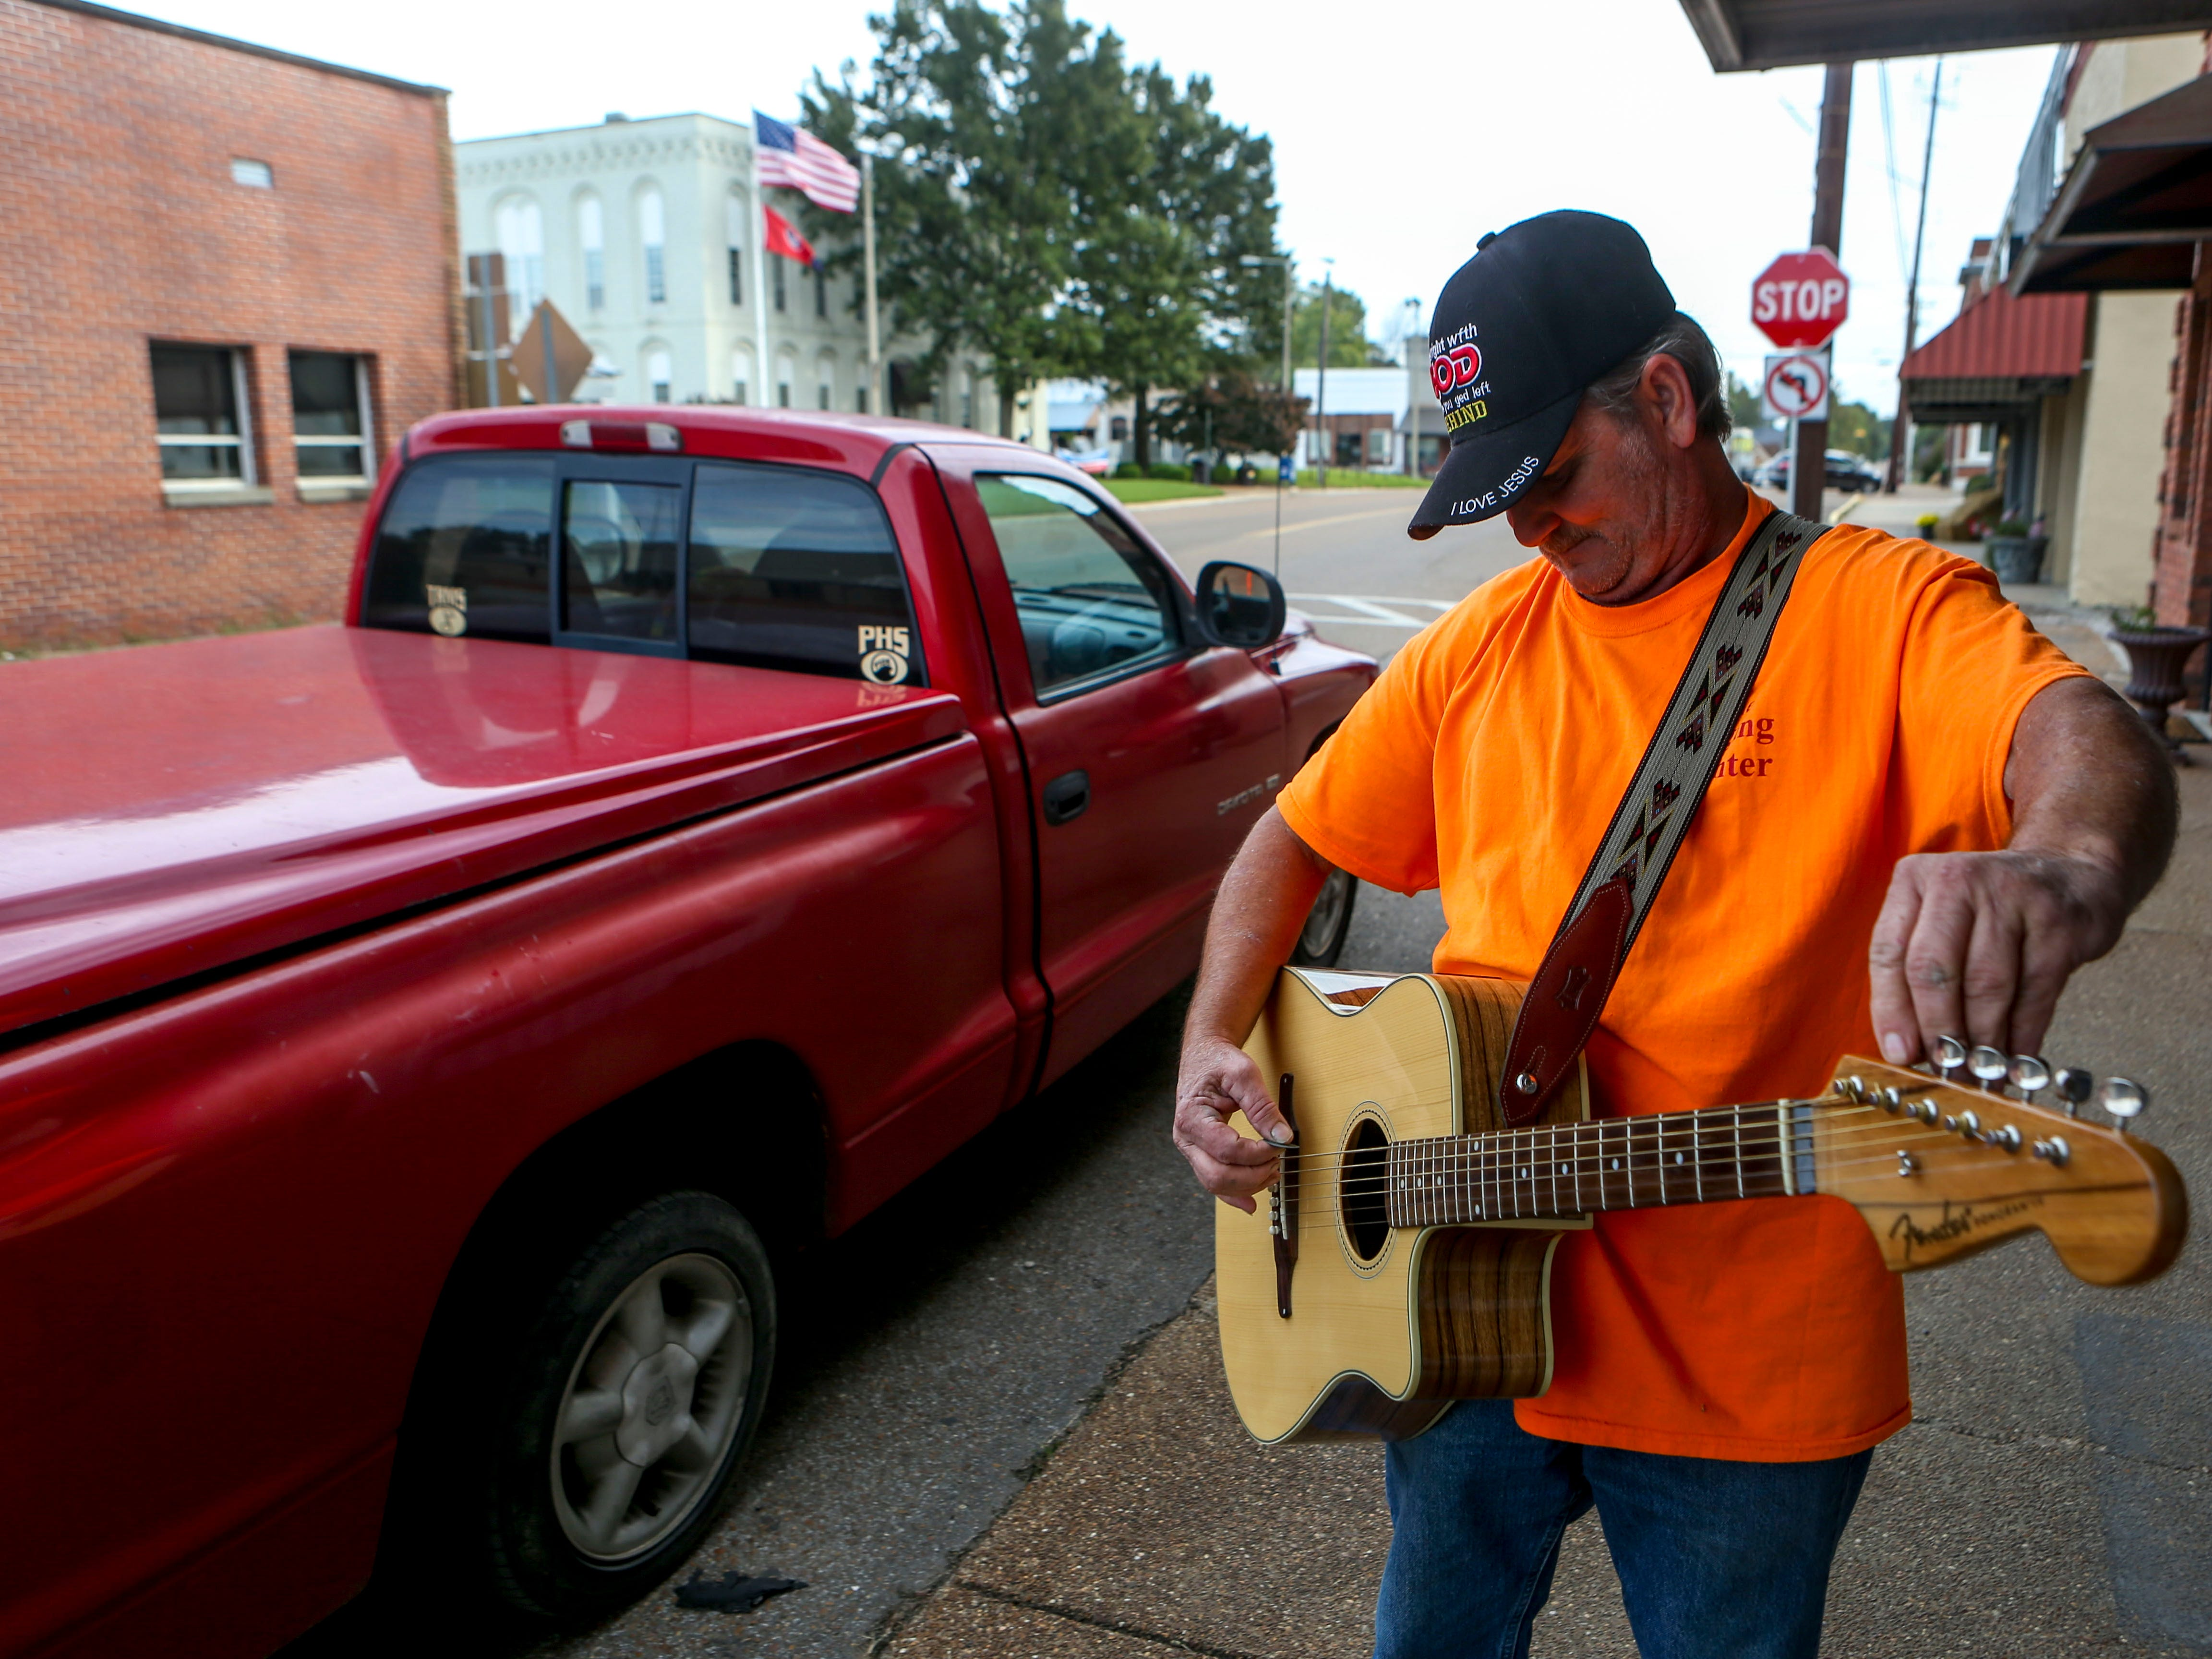 Scott French plays a song and shares his life story of addiction, redemption, and finding purpose outside of the church he plays guitar for at New Life Church in Alamo, Tenn., on Wednesday, Oct. 24, 2018.